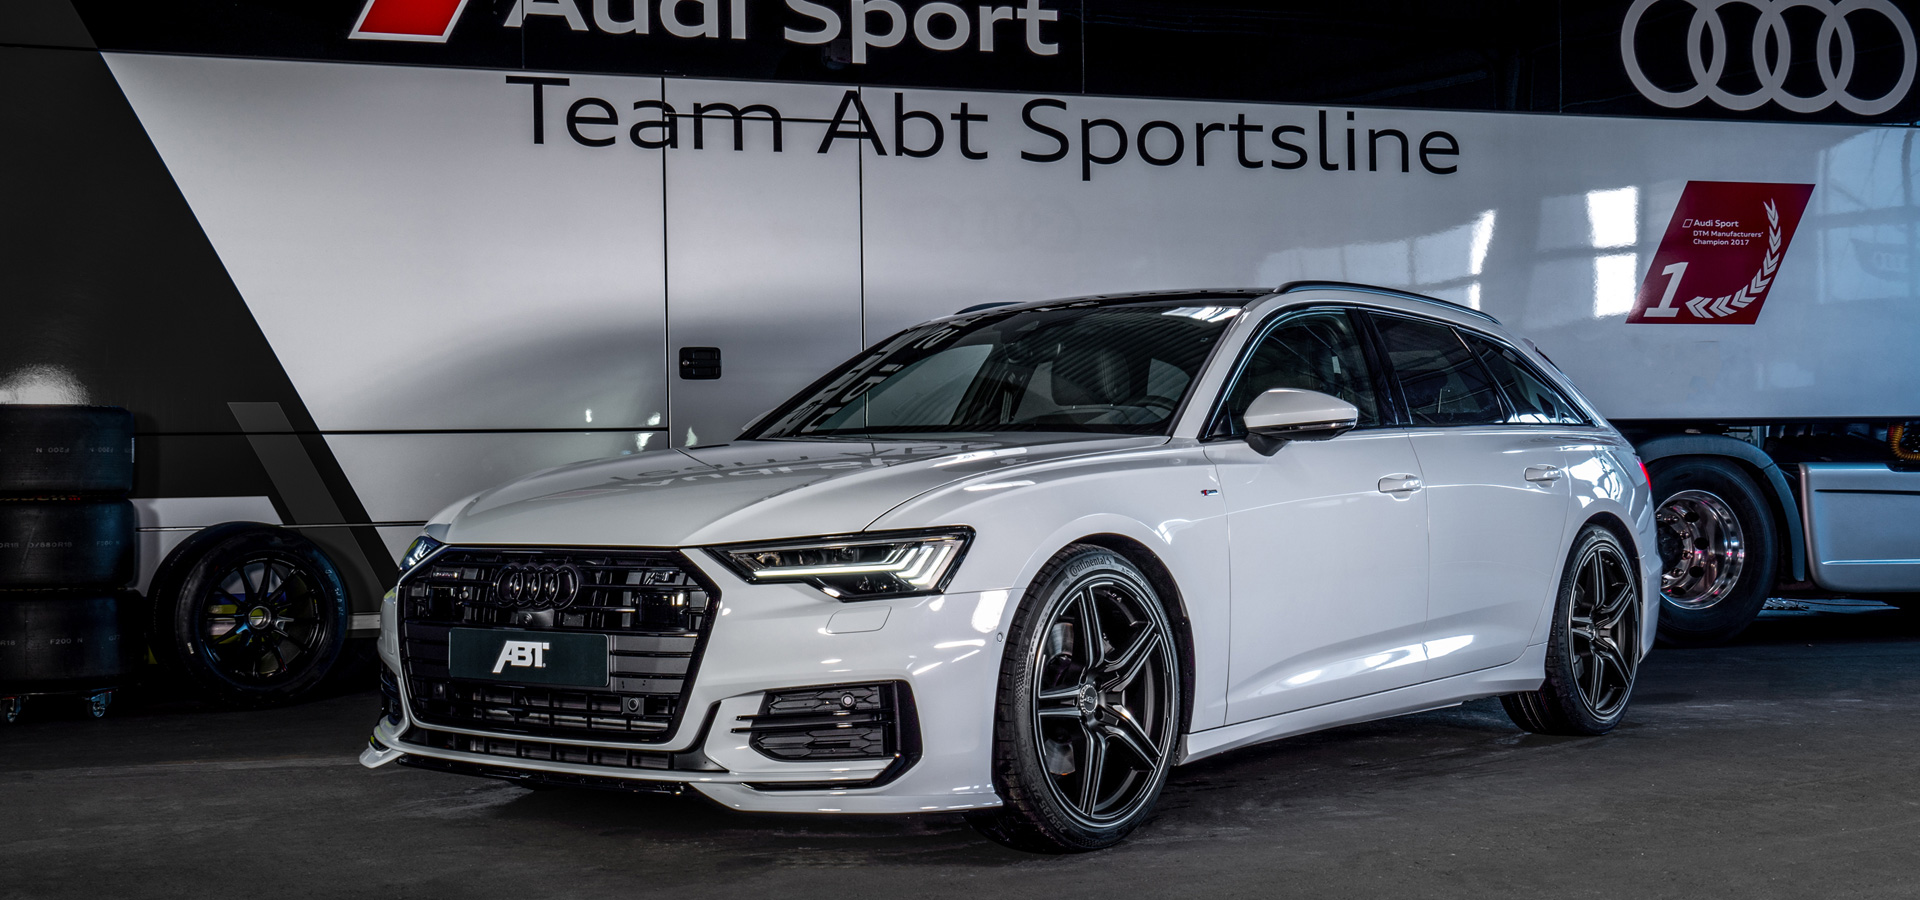 Audi A6 (from 2019) and S6 (from 2020)